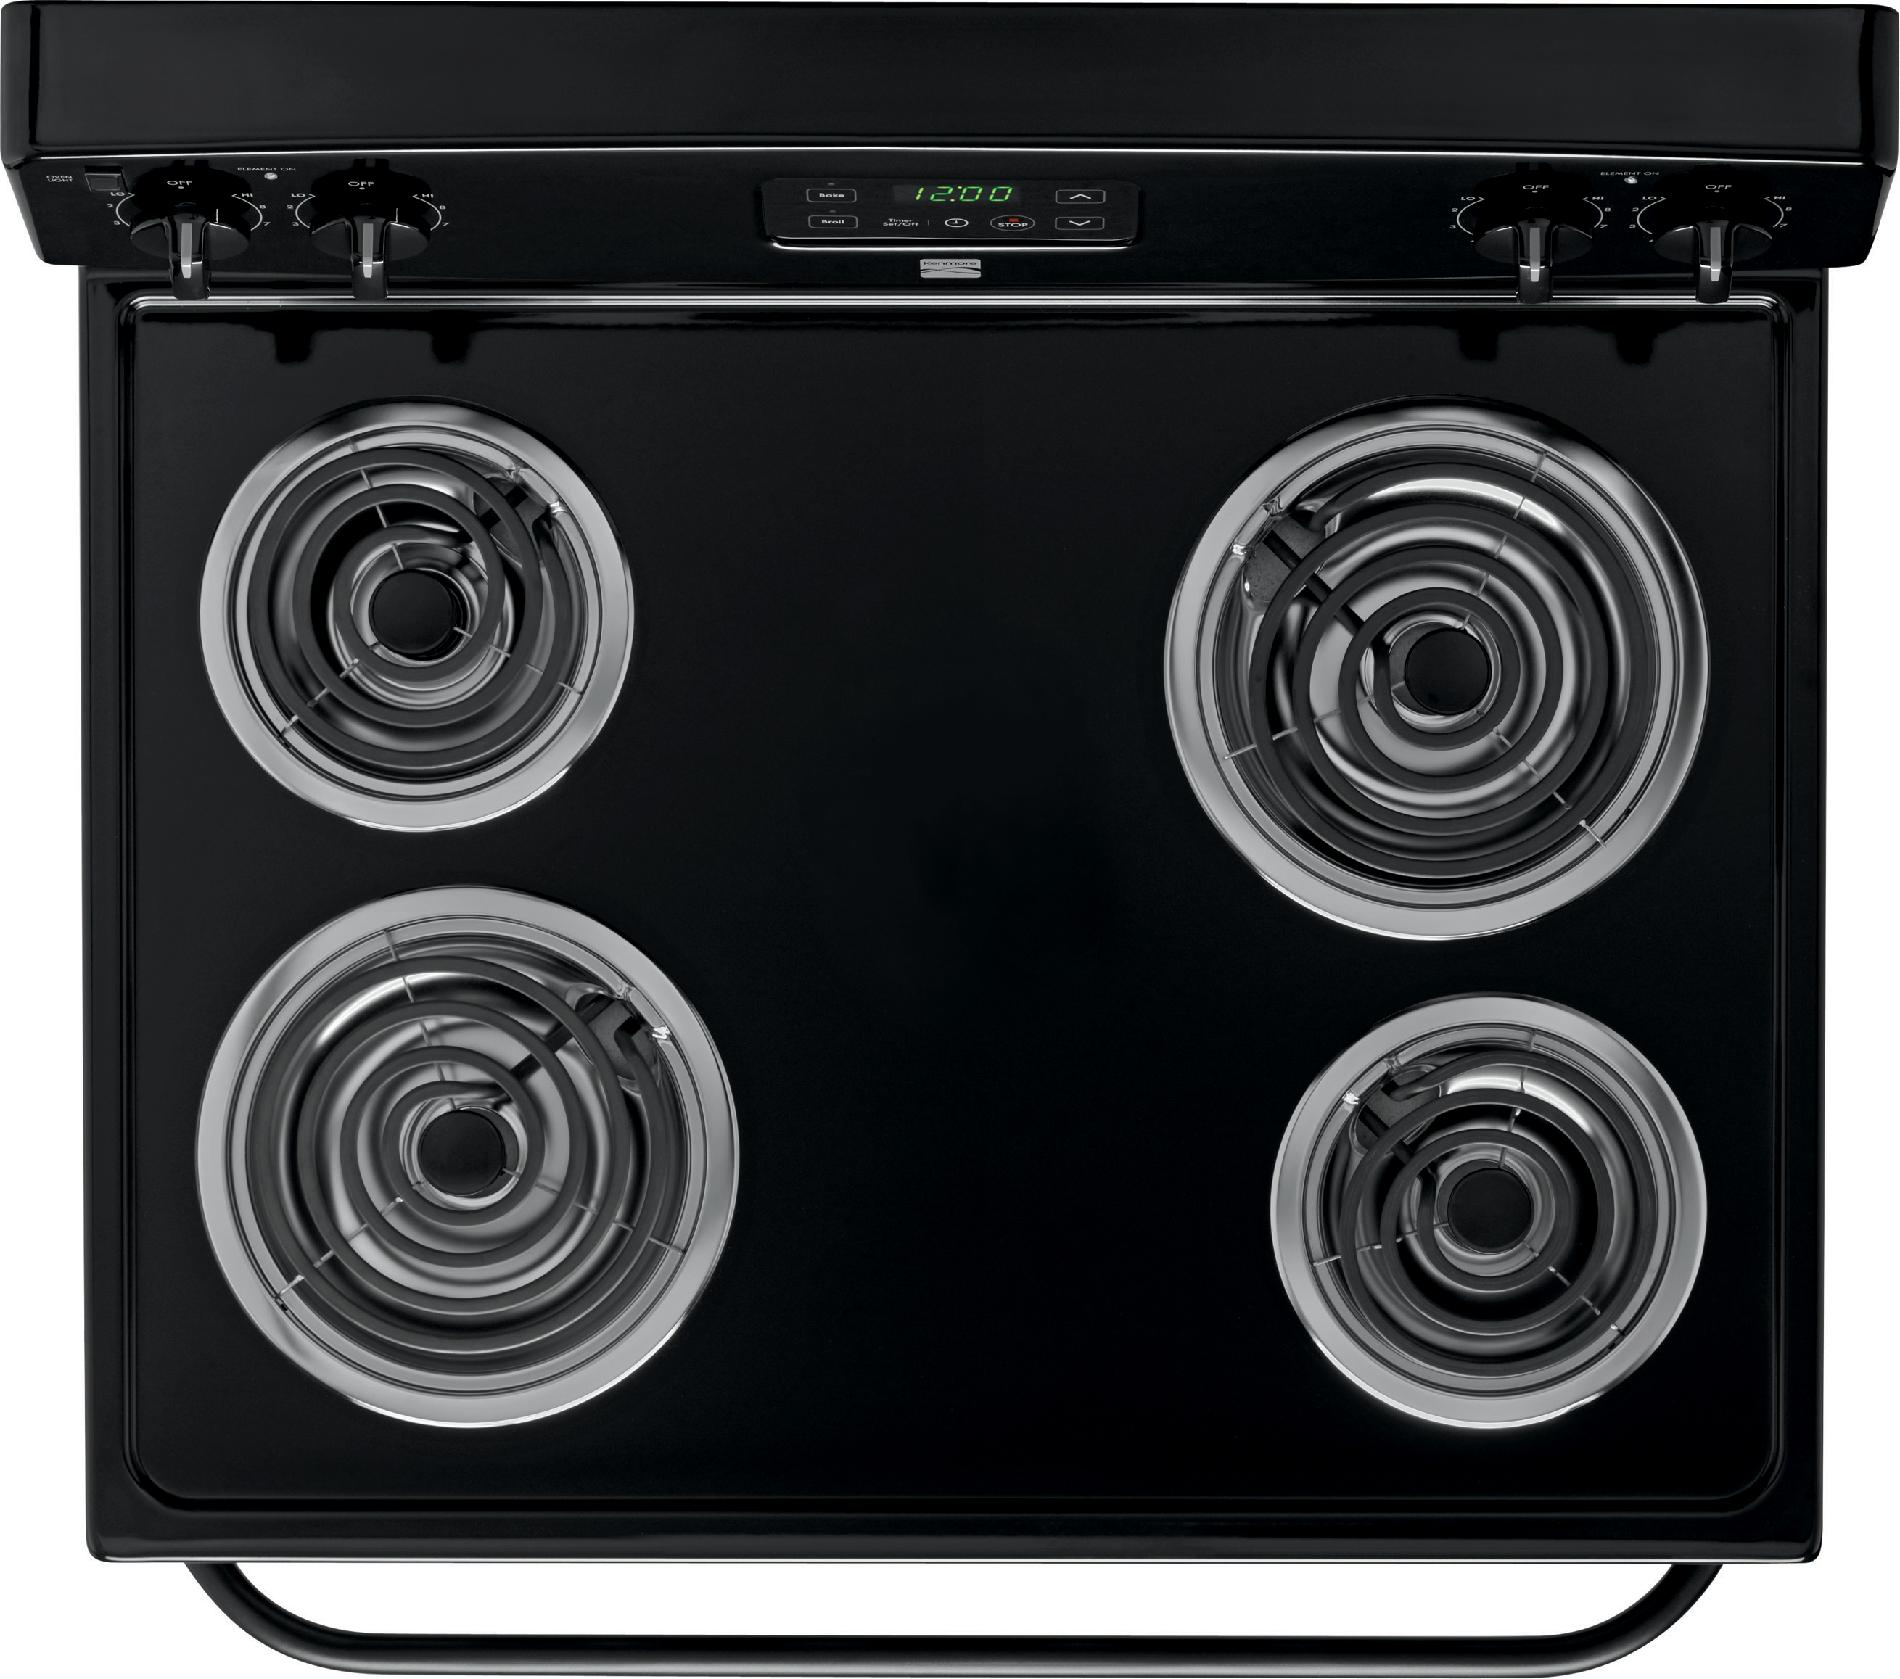 Kenmore 4.9 cu. ft. Electric Range - Black